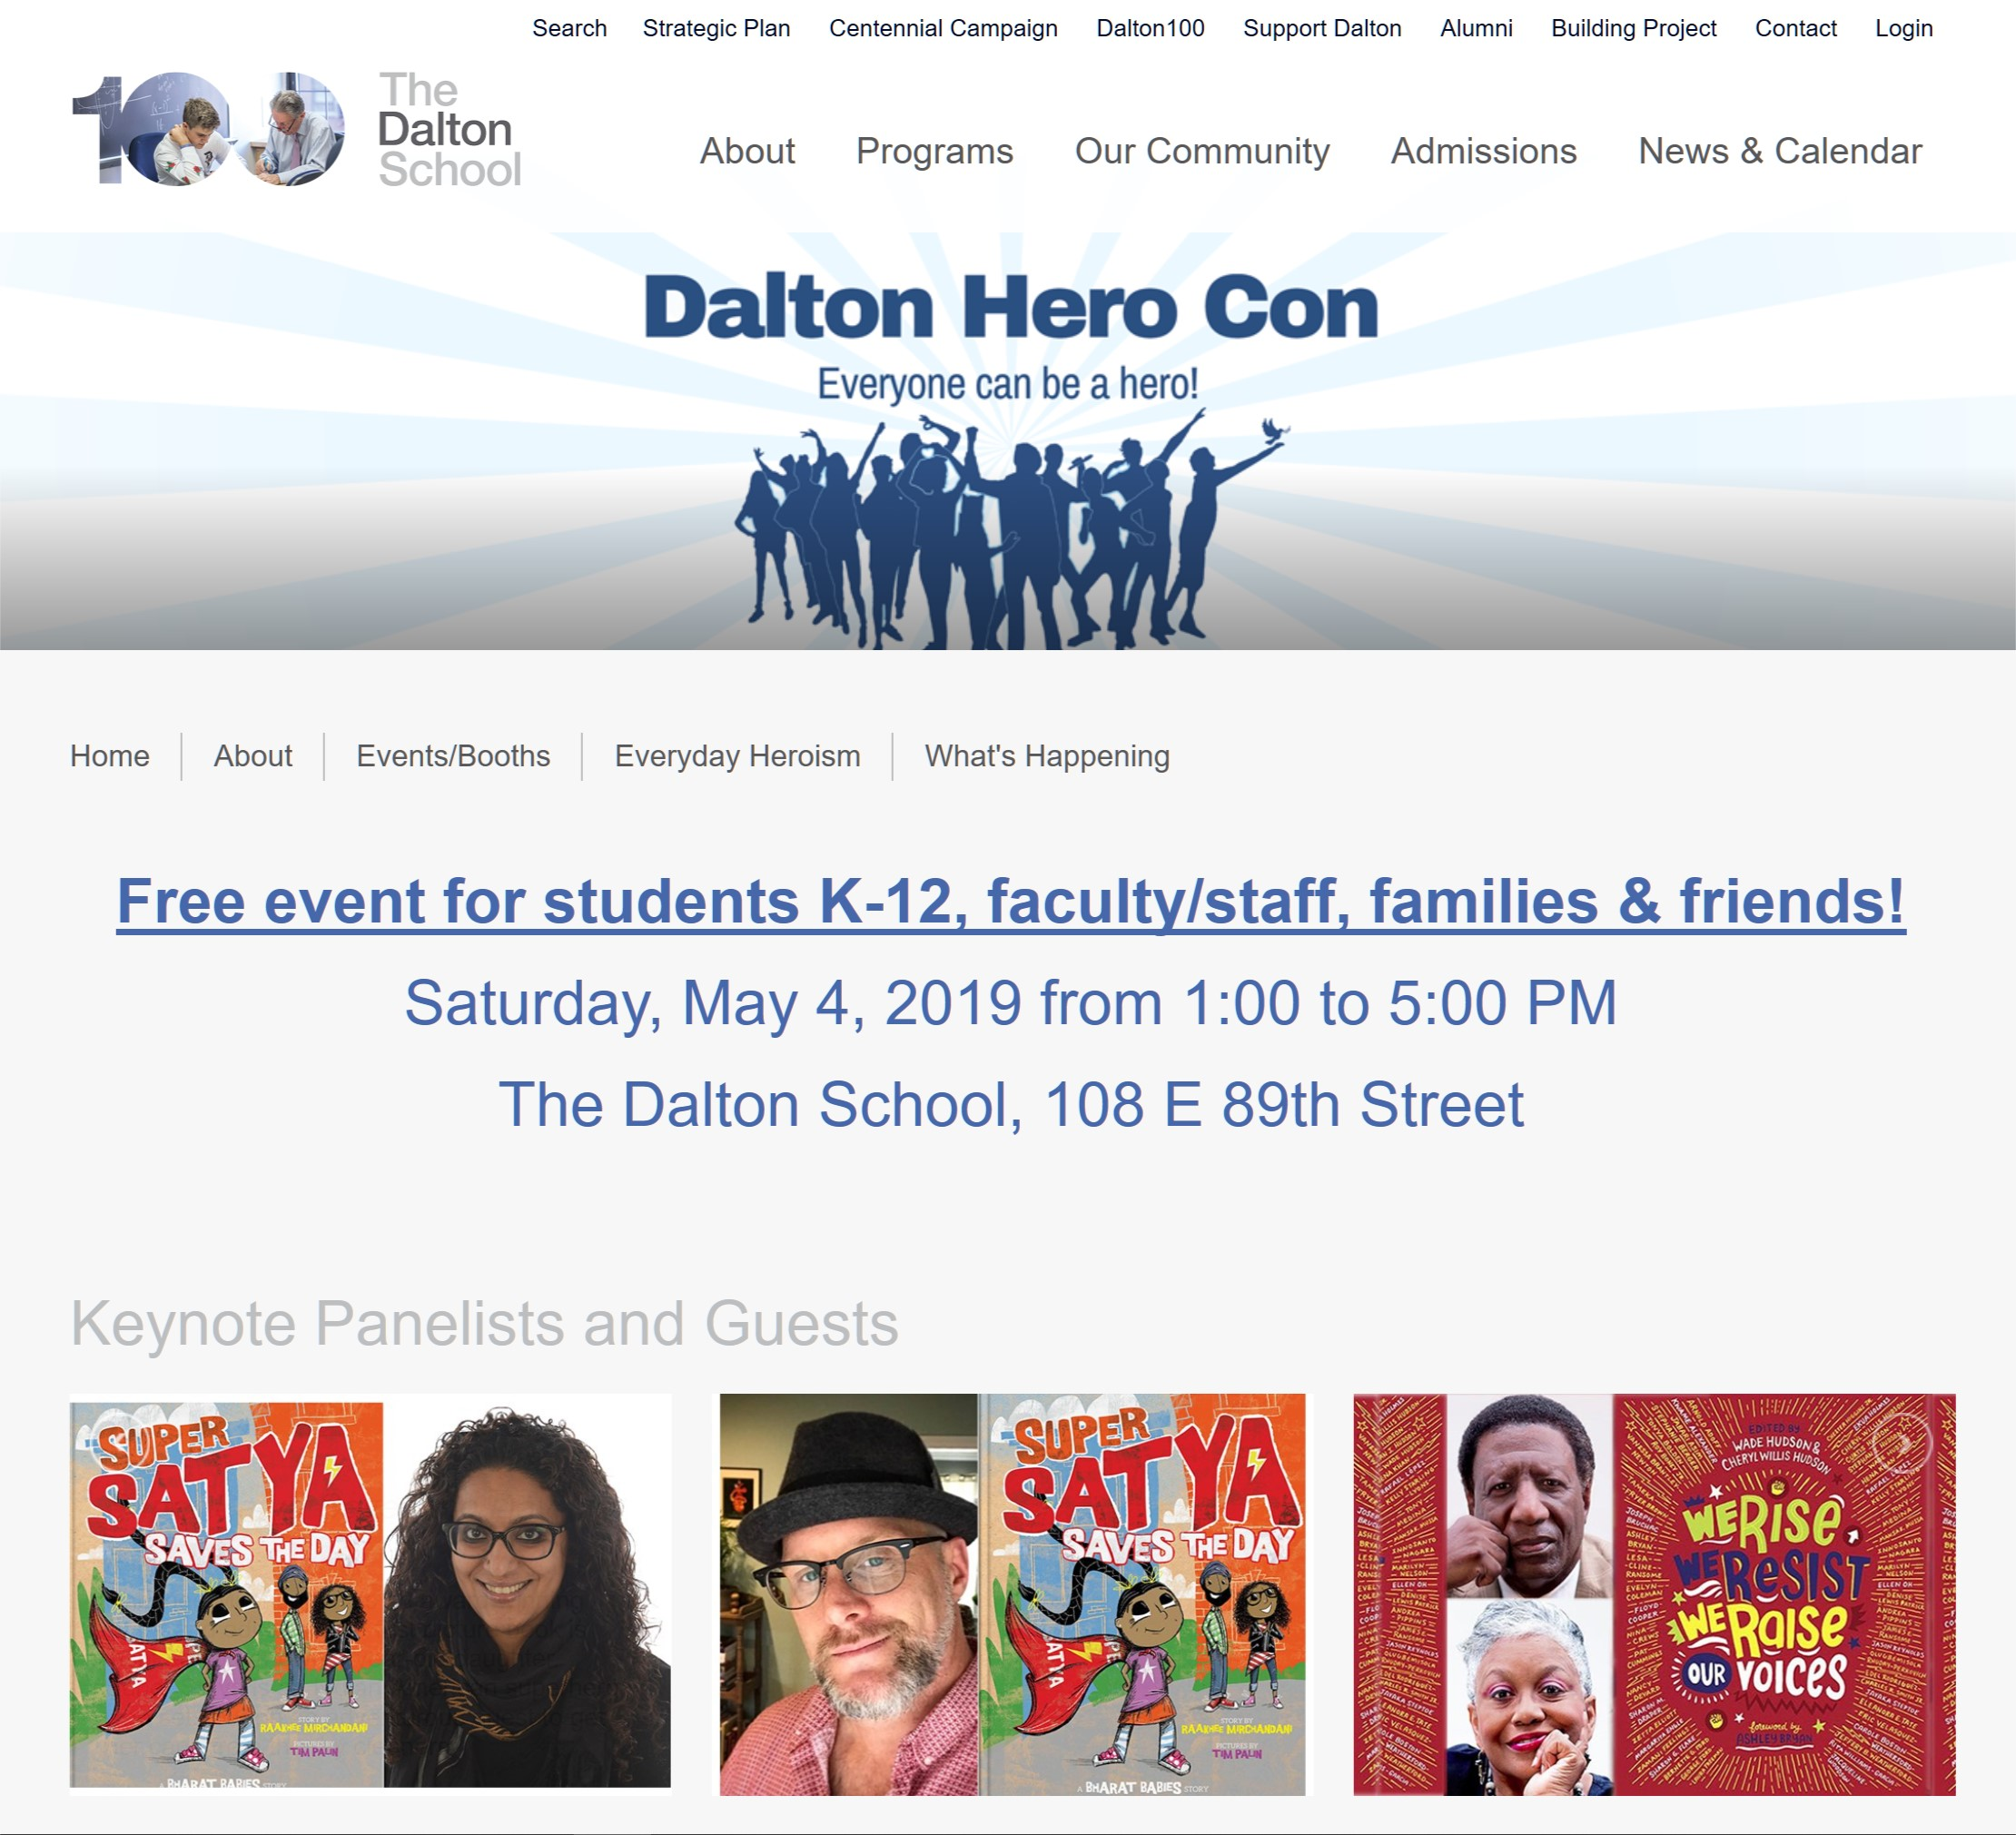 Dalton Hero ConNYC - 5/4/19Excited to be a panelist, draw and sign! More details to come!